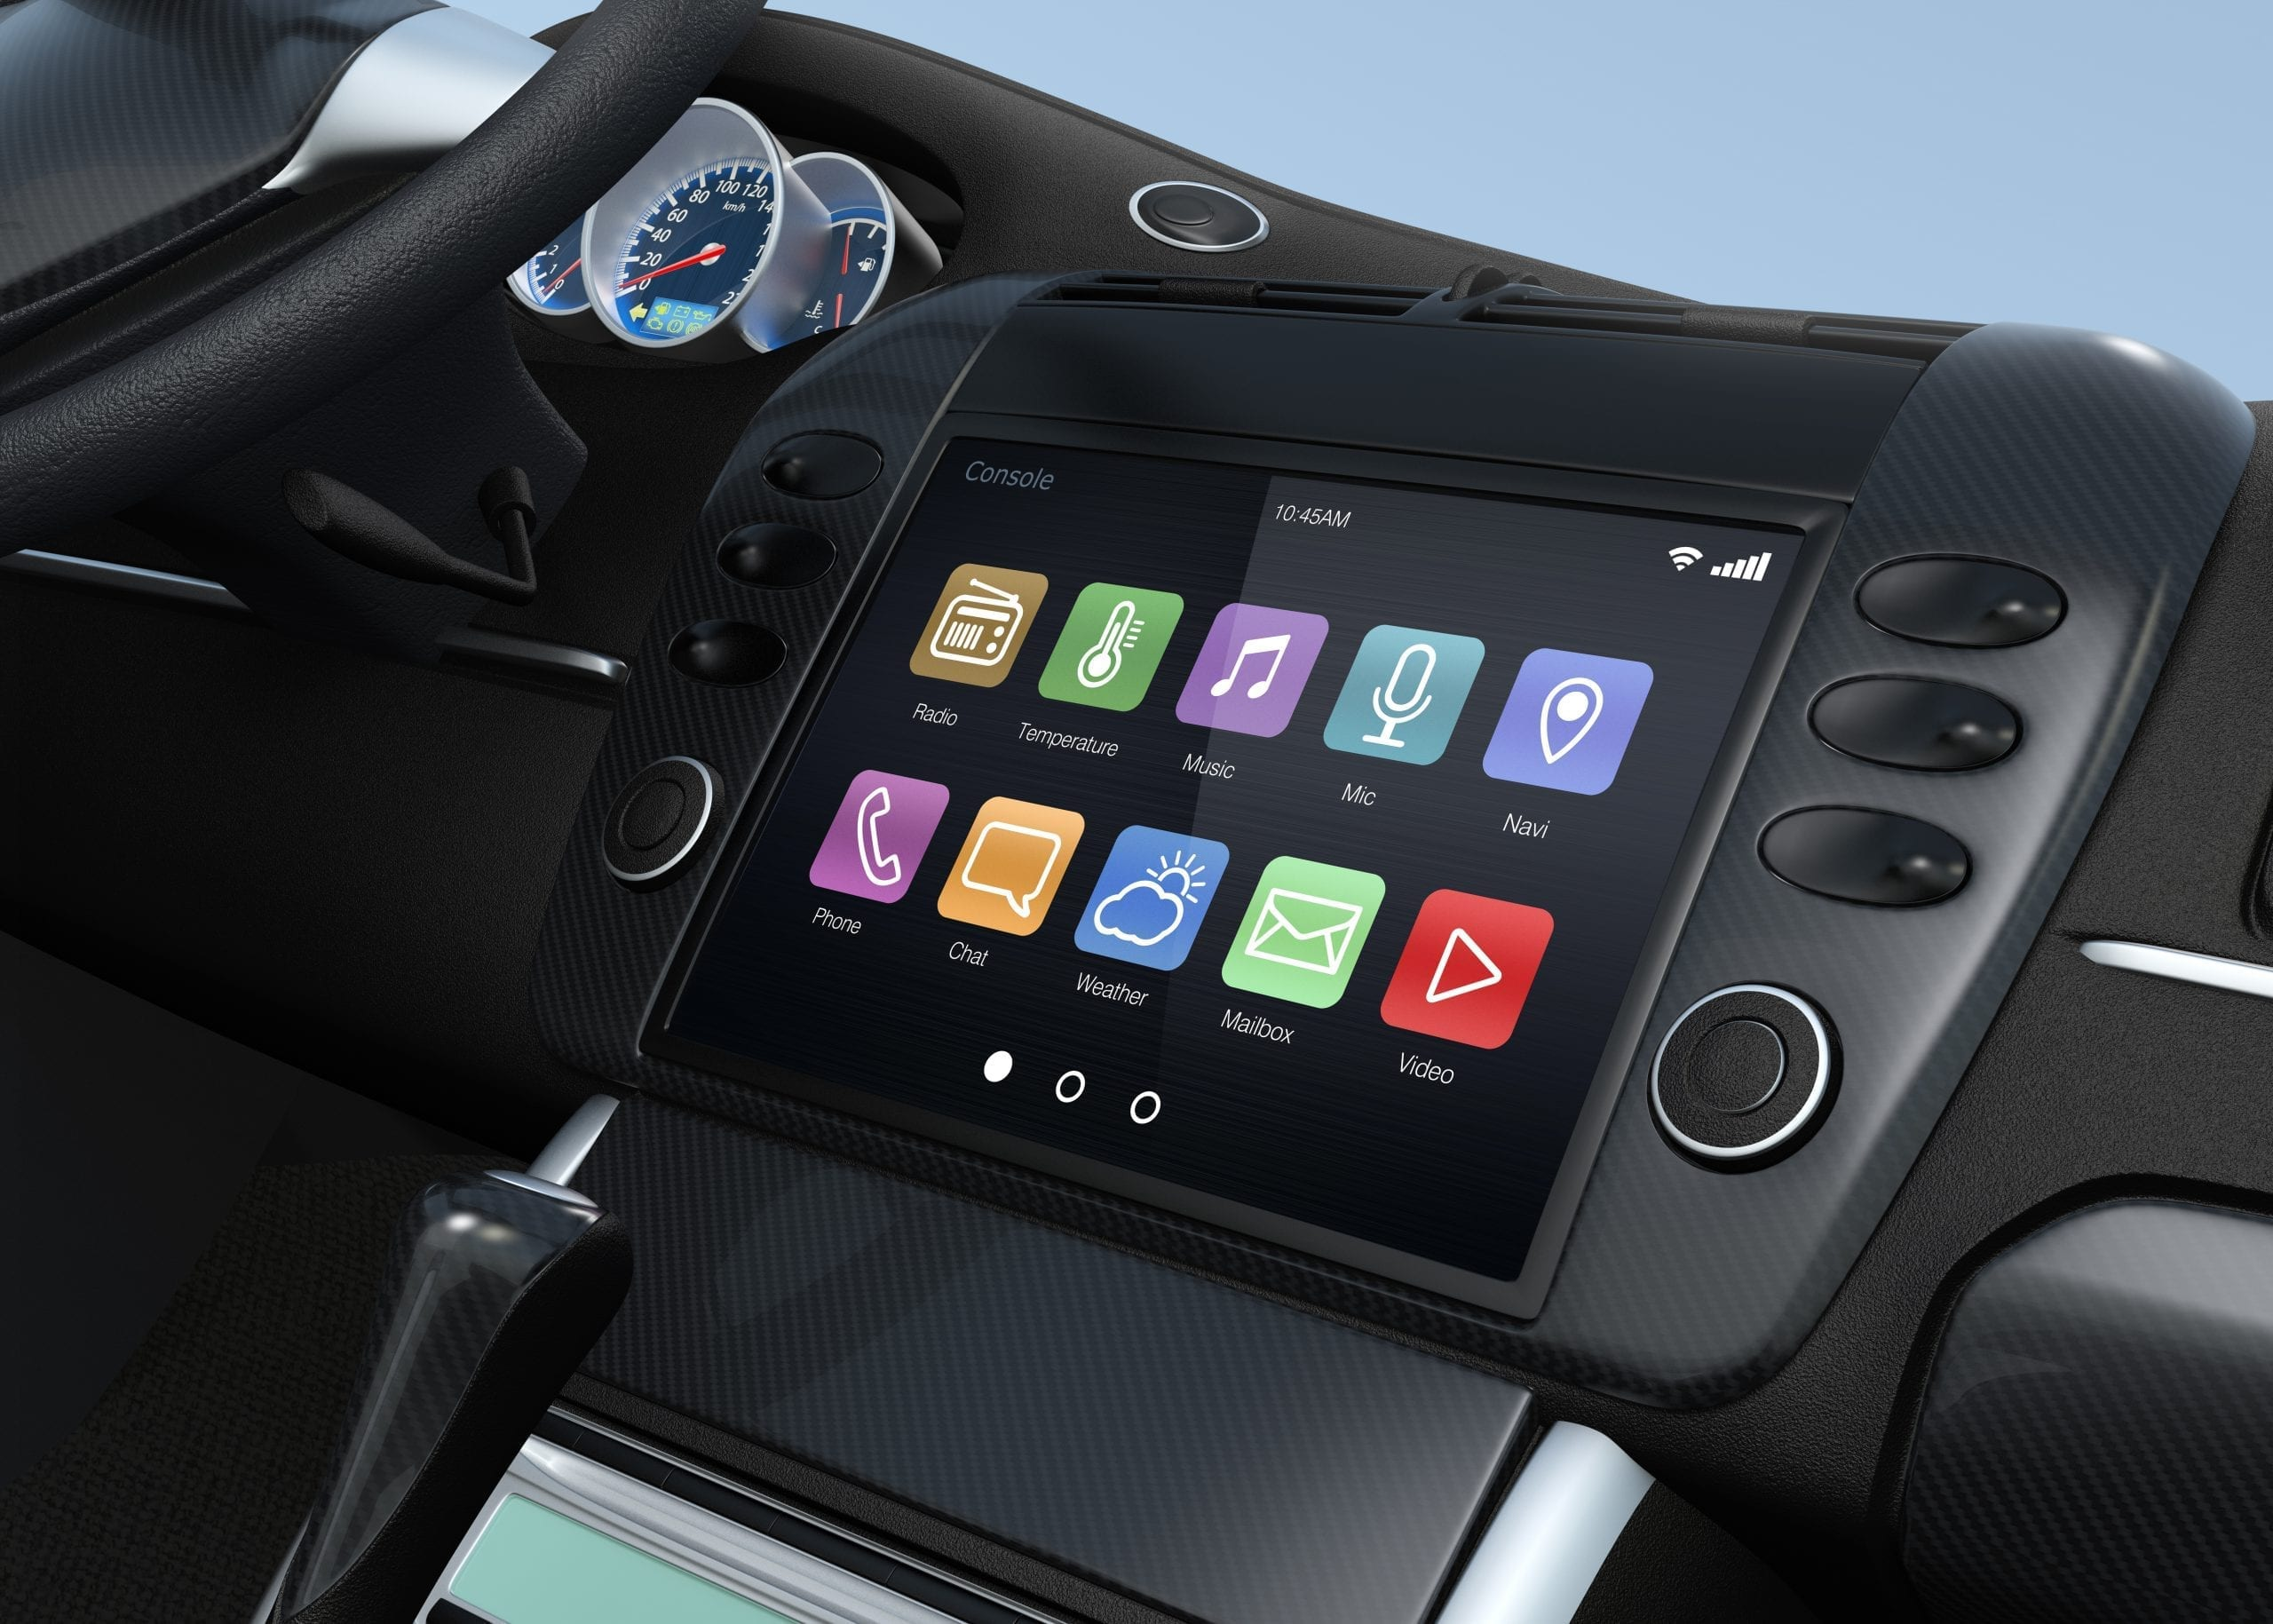 smart touch screen multimedia system for automobile.